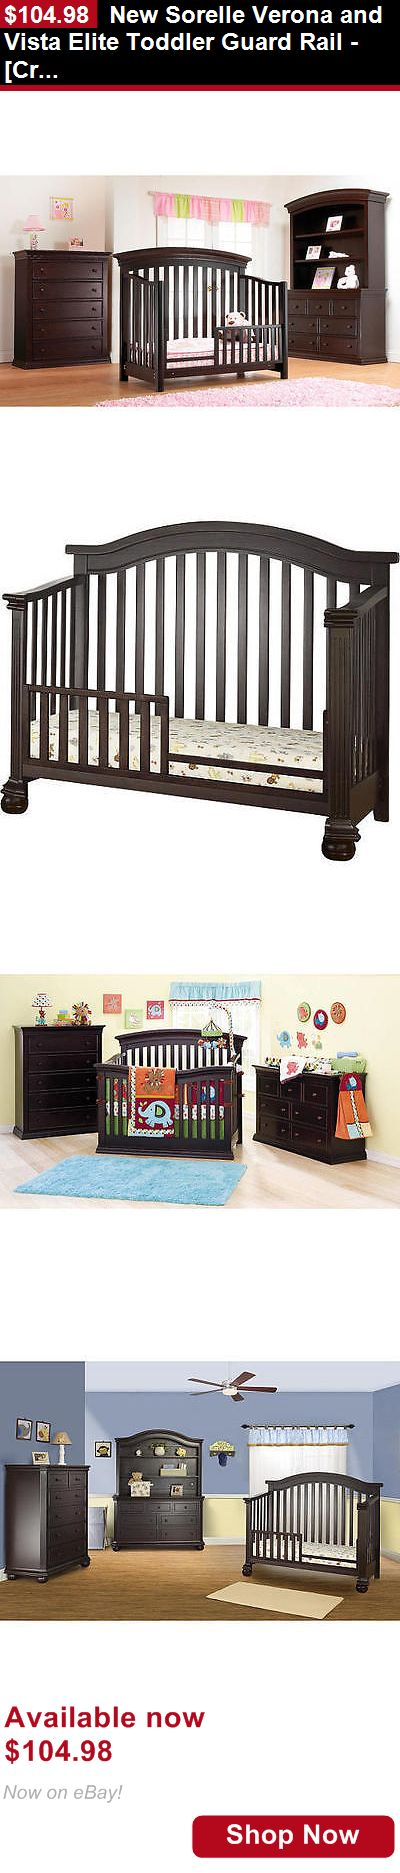 Nursery Furniture Sets: New Sorelle Verona And Vista Elite Toddler Guard Rail - [Crib Not Included] BUY IT NOW ONLY: $104.98